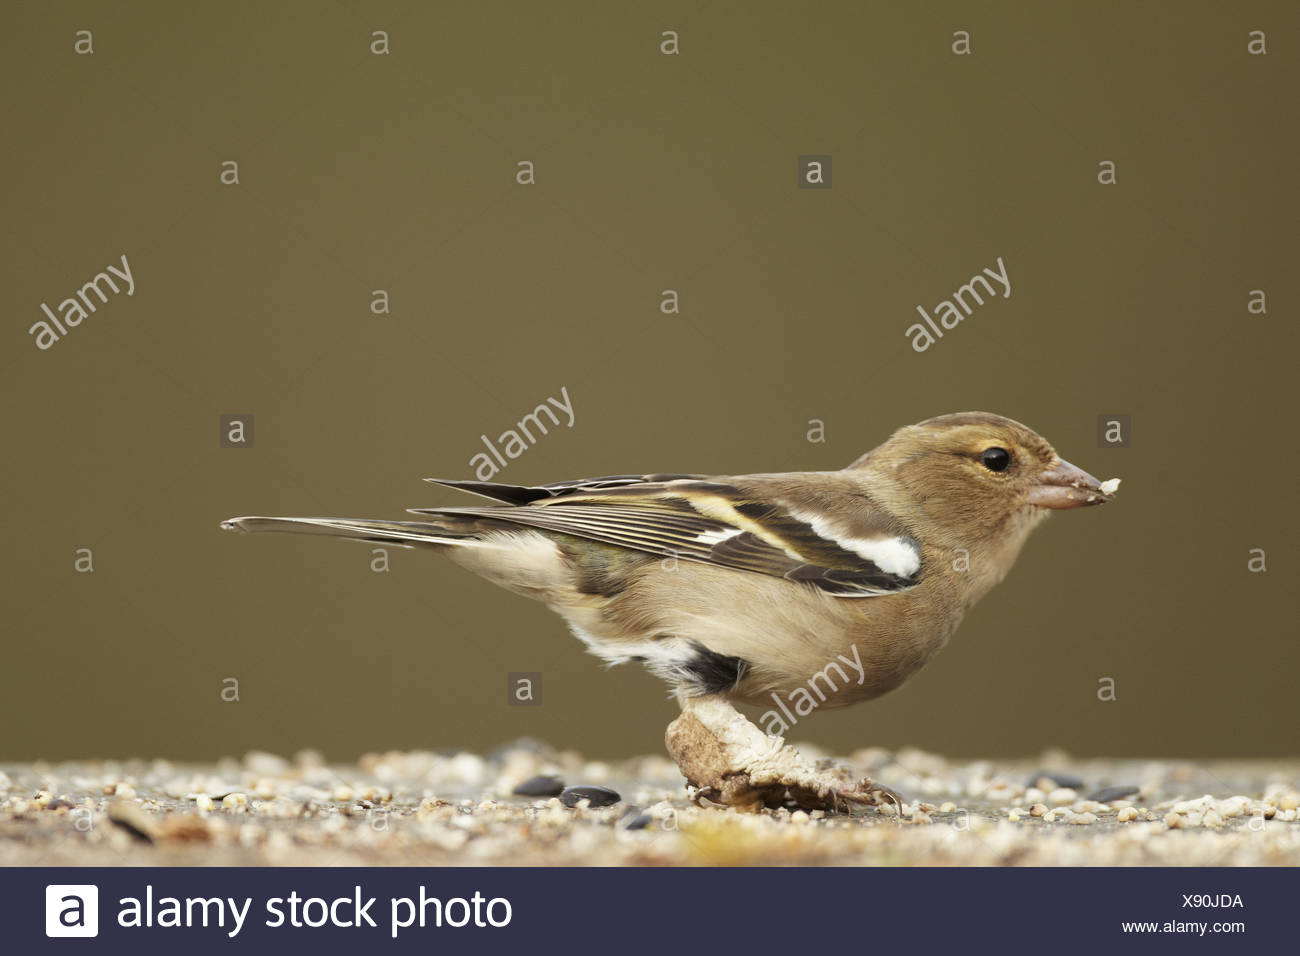 Chaffinch (Fringilla coelebs) adult female, with legs covered in scales caused by Knemidocoptes mites, feeding at birdtable, - Stock Image